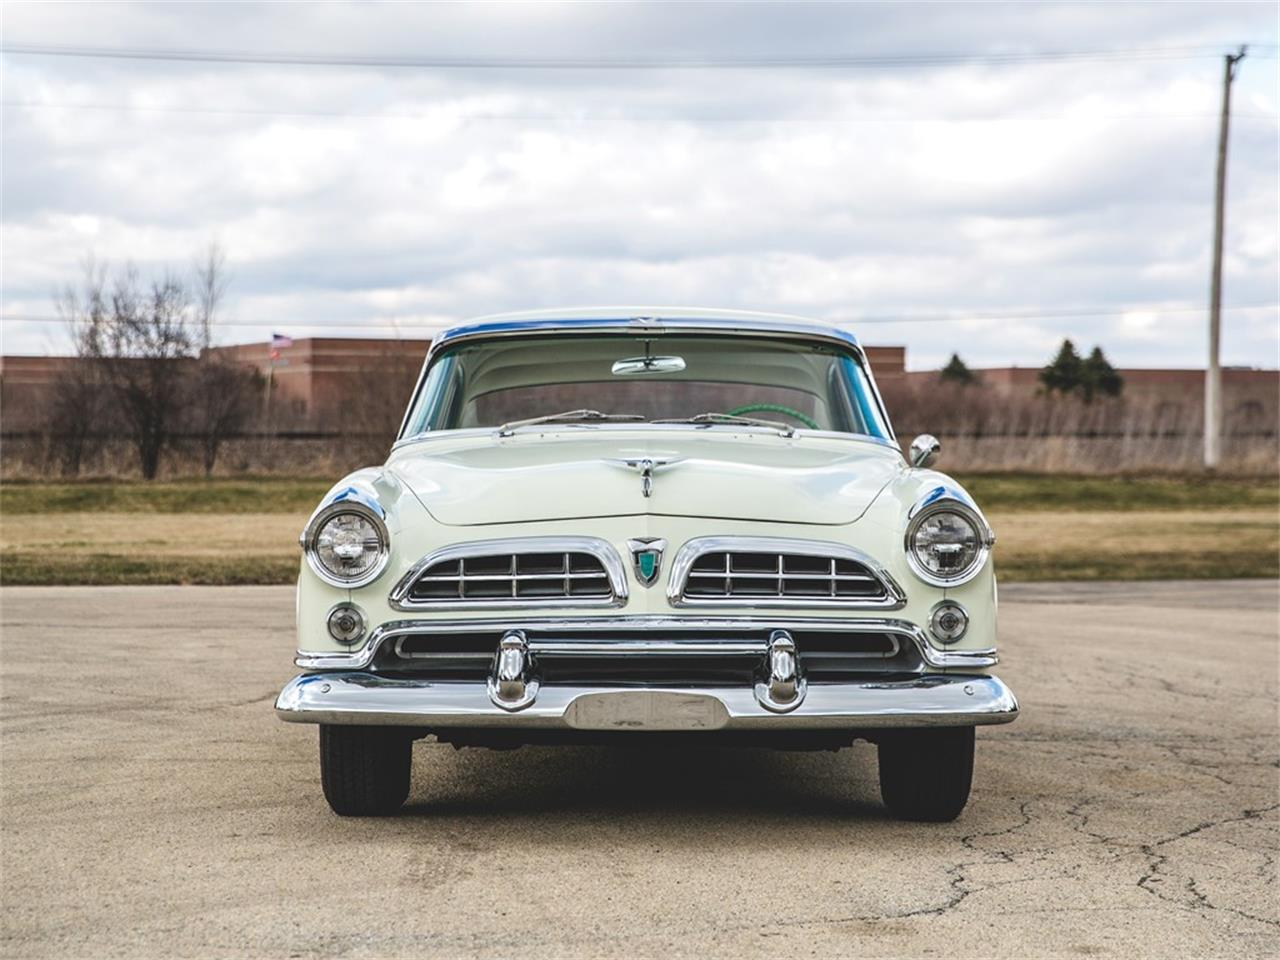 Large Picture of Classic 1955 Windsor located in Auburn Indiana Auction Vehicle - N8RK